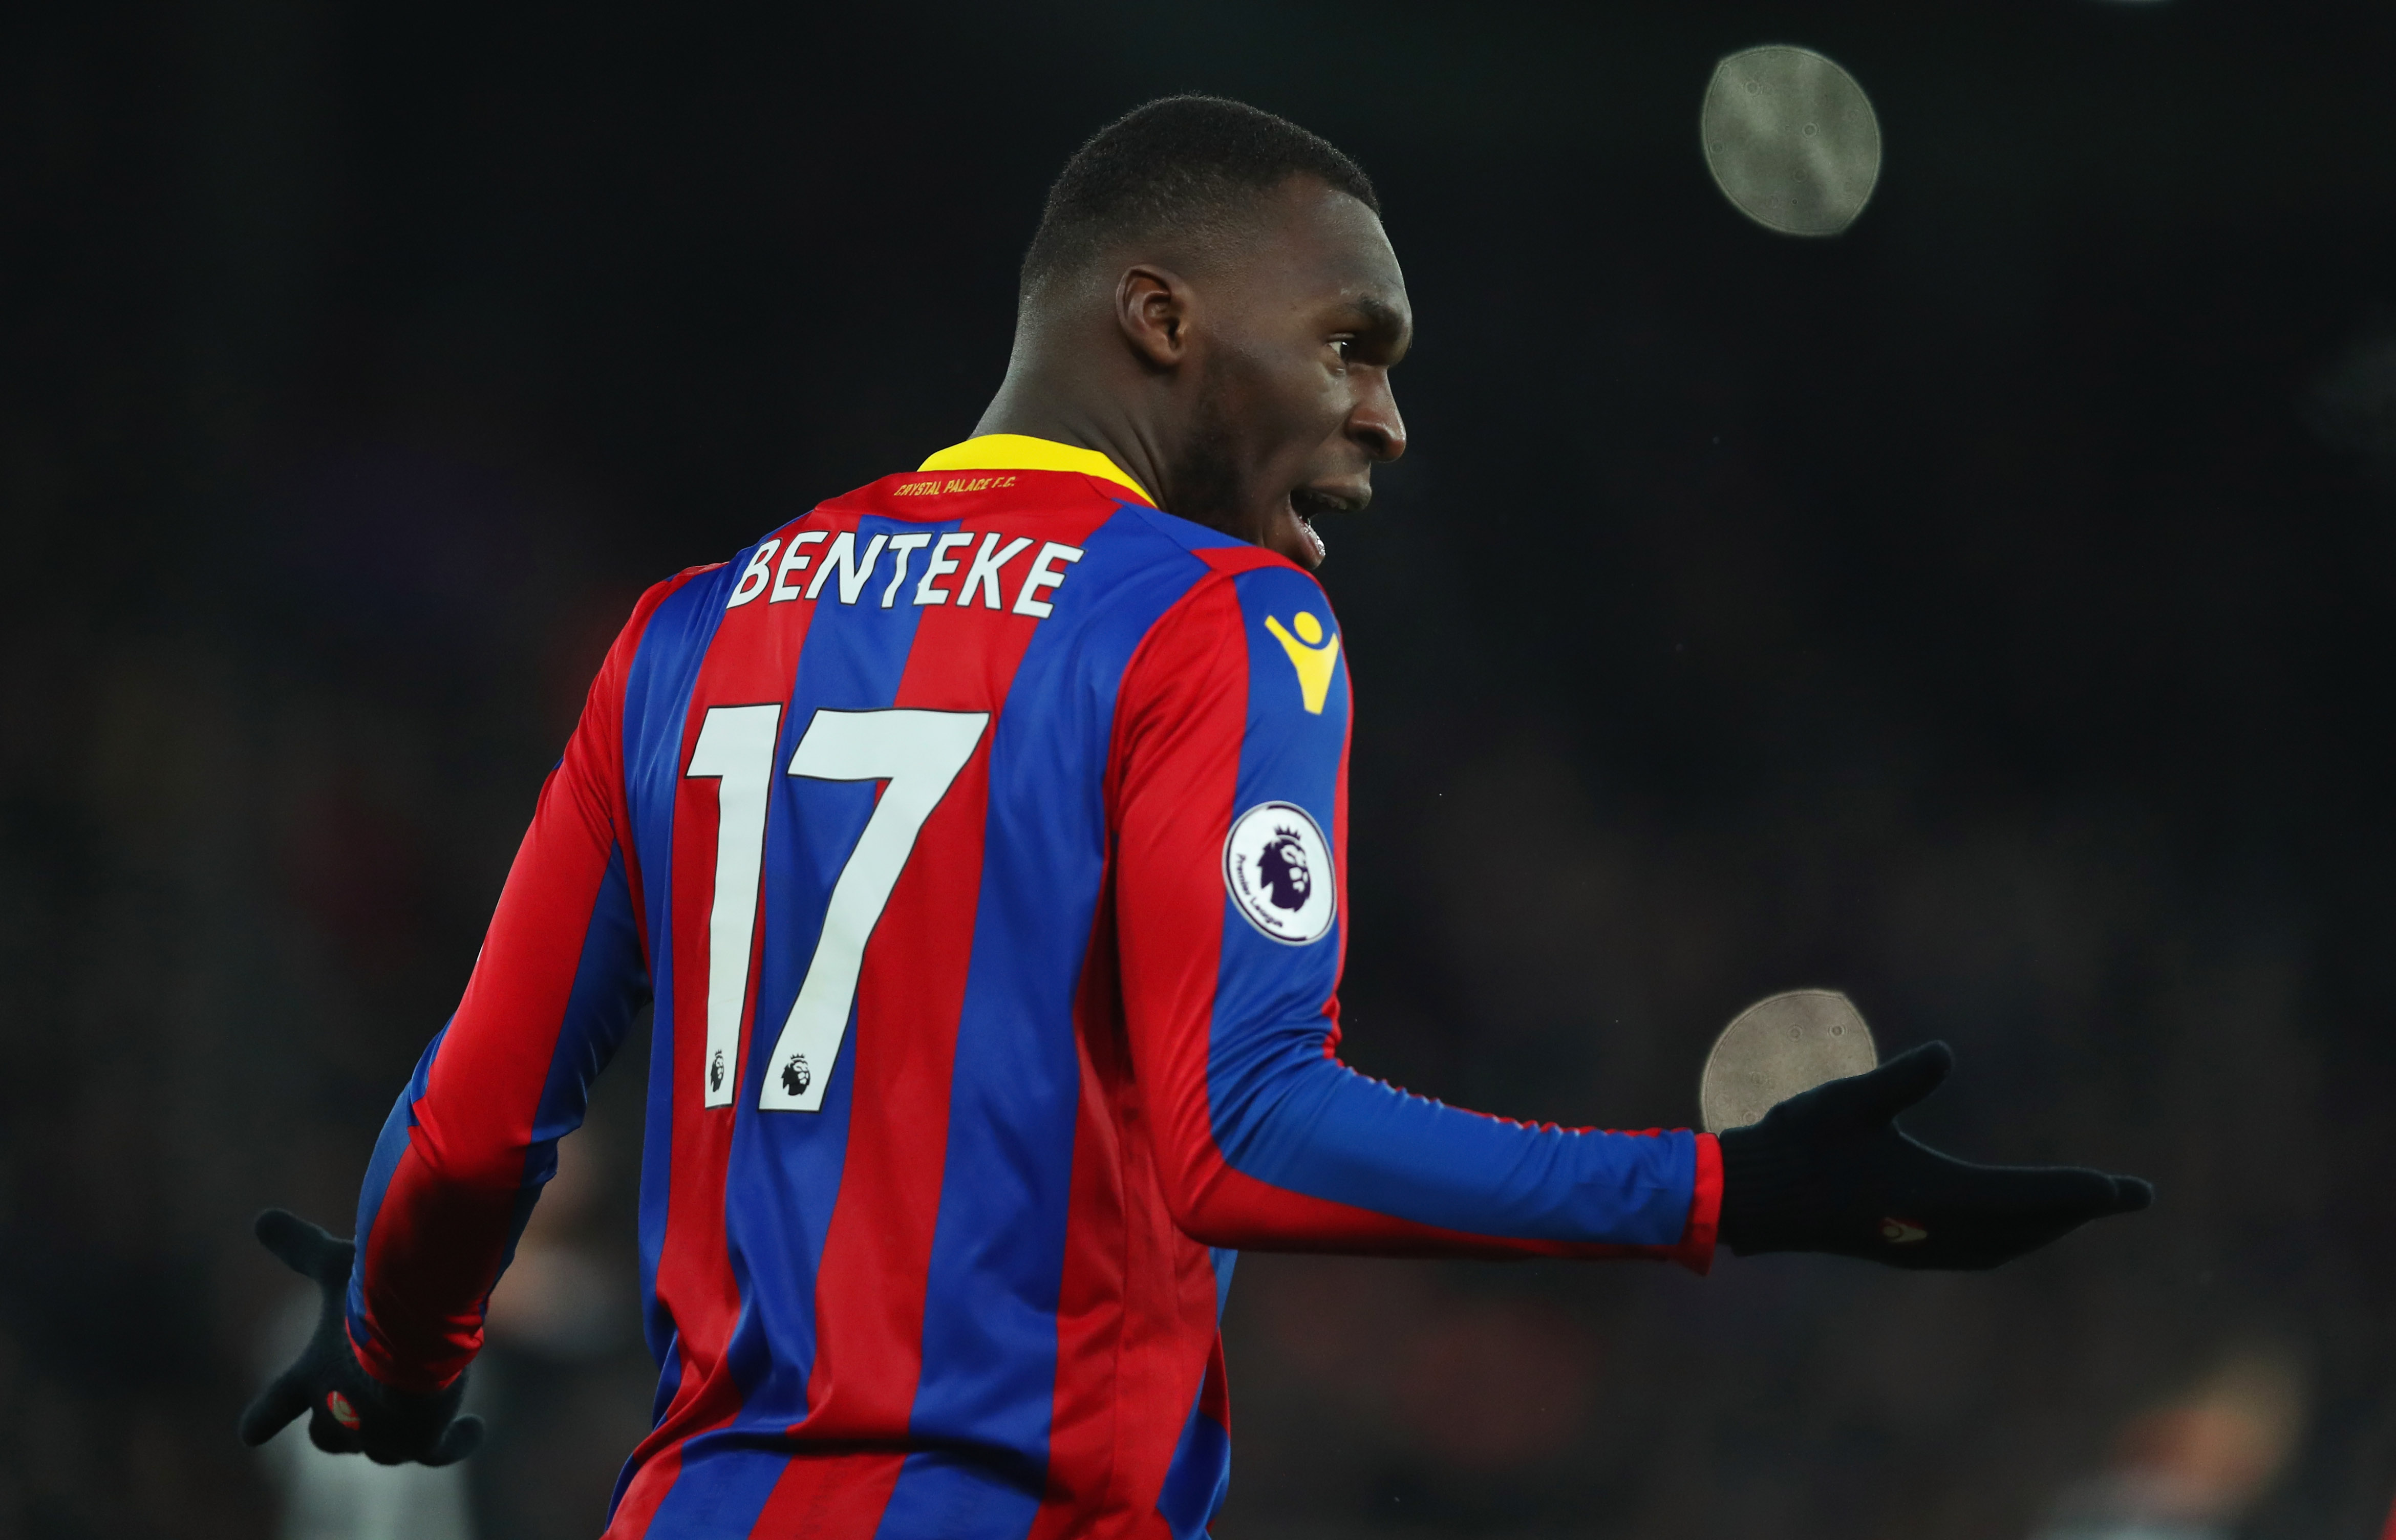 Christian Benteke suspended for the game against his former club (Photo by Dan Istitene/Getty Images)